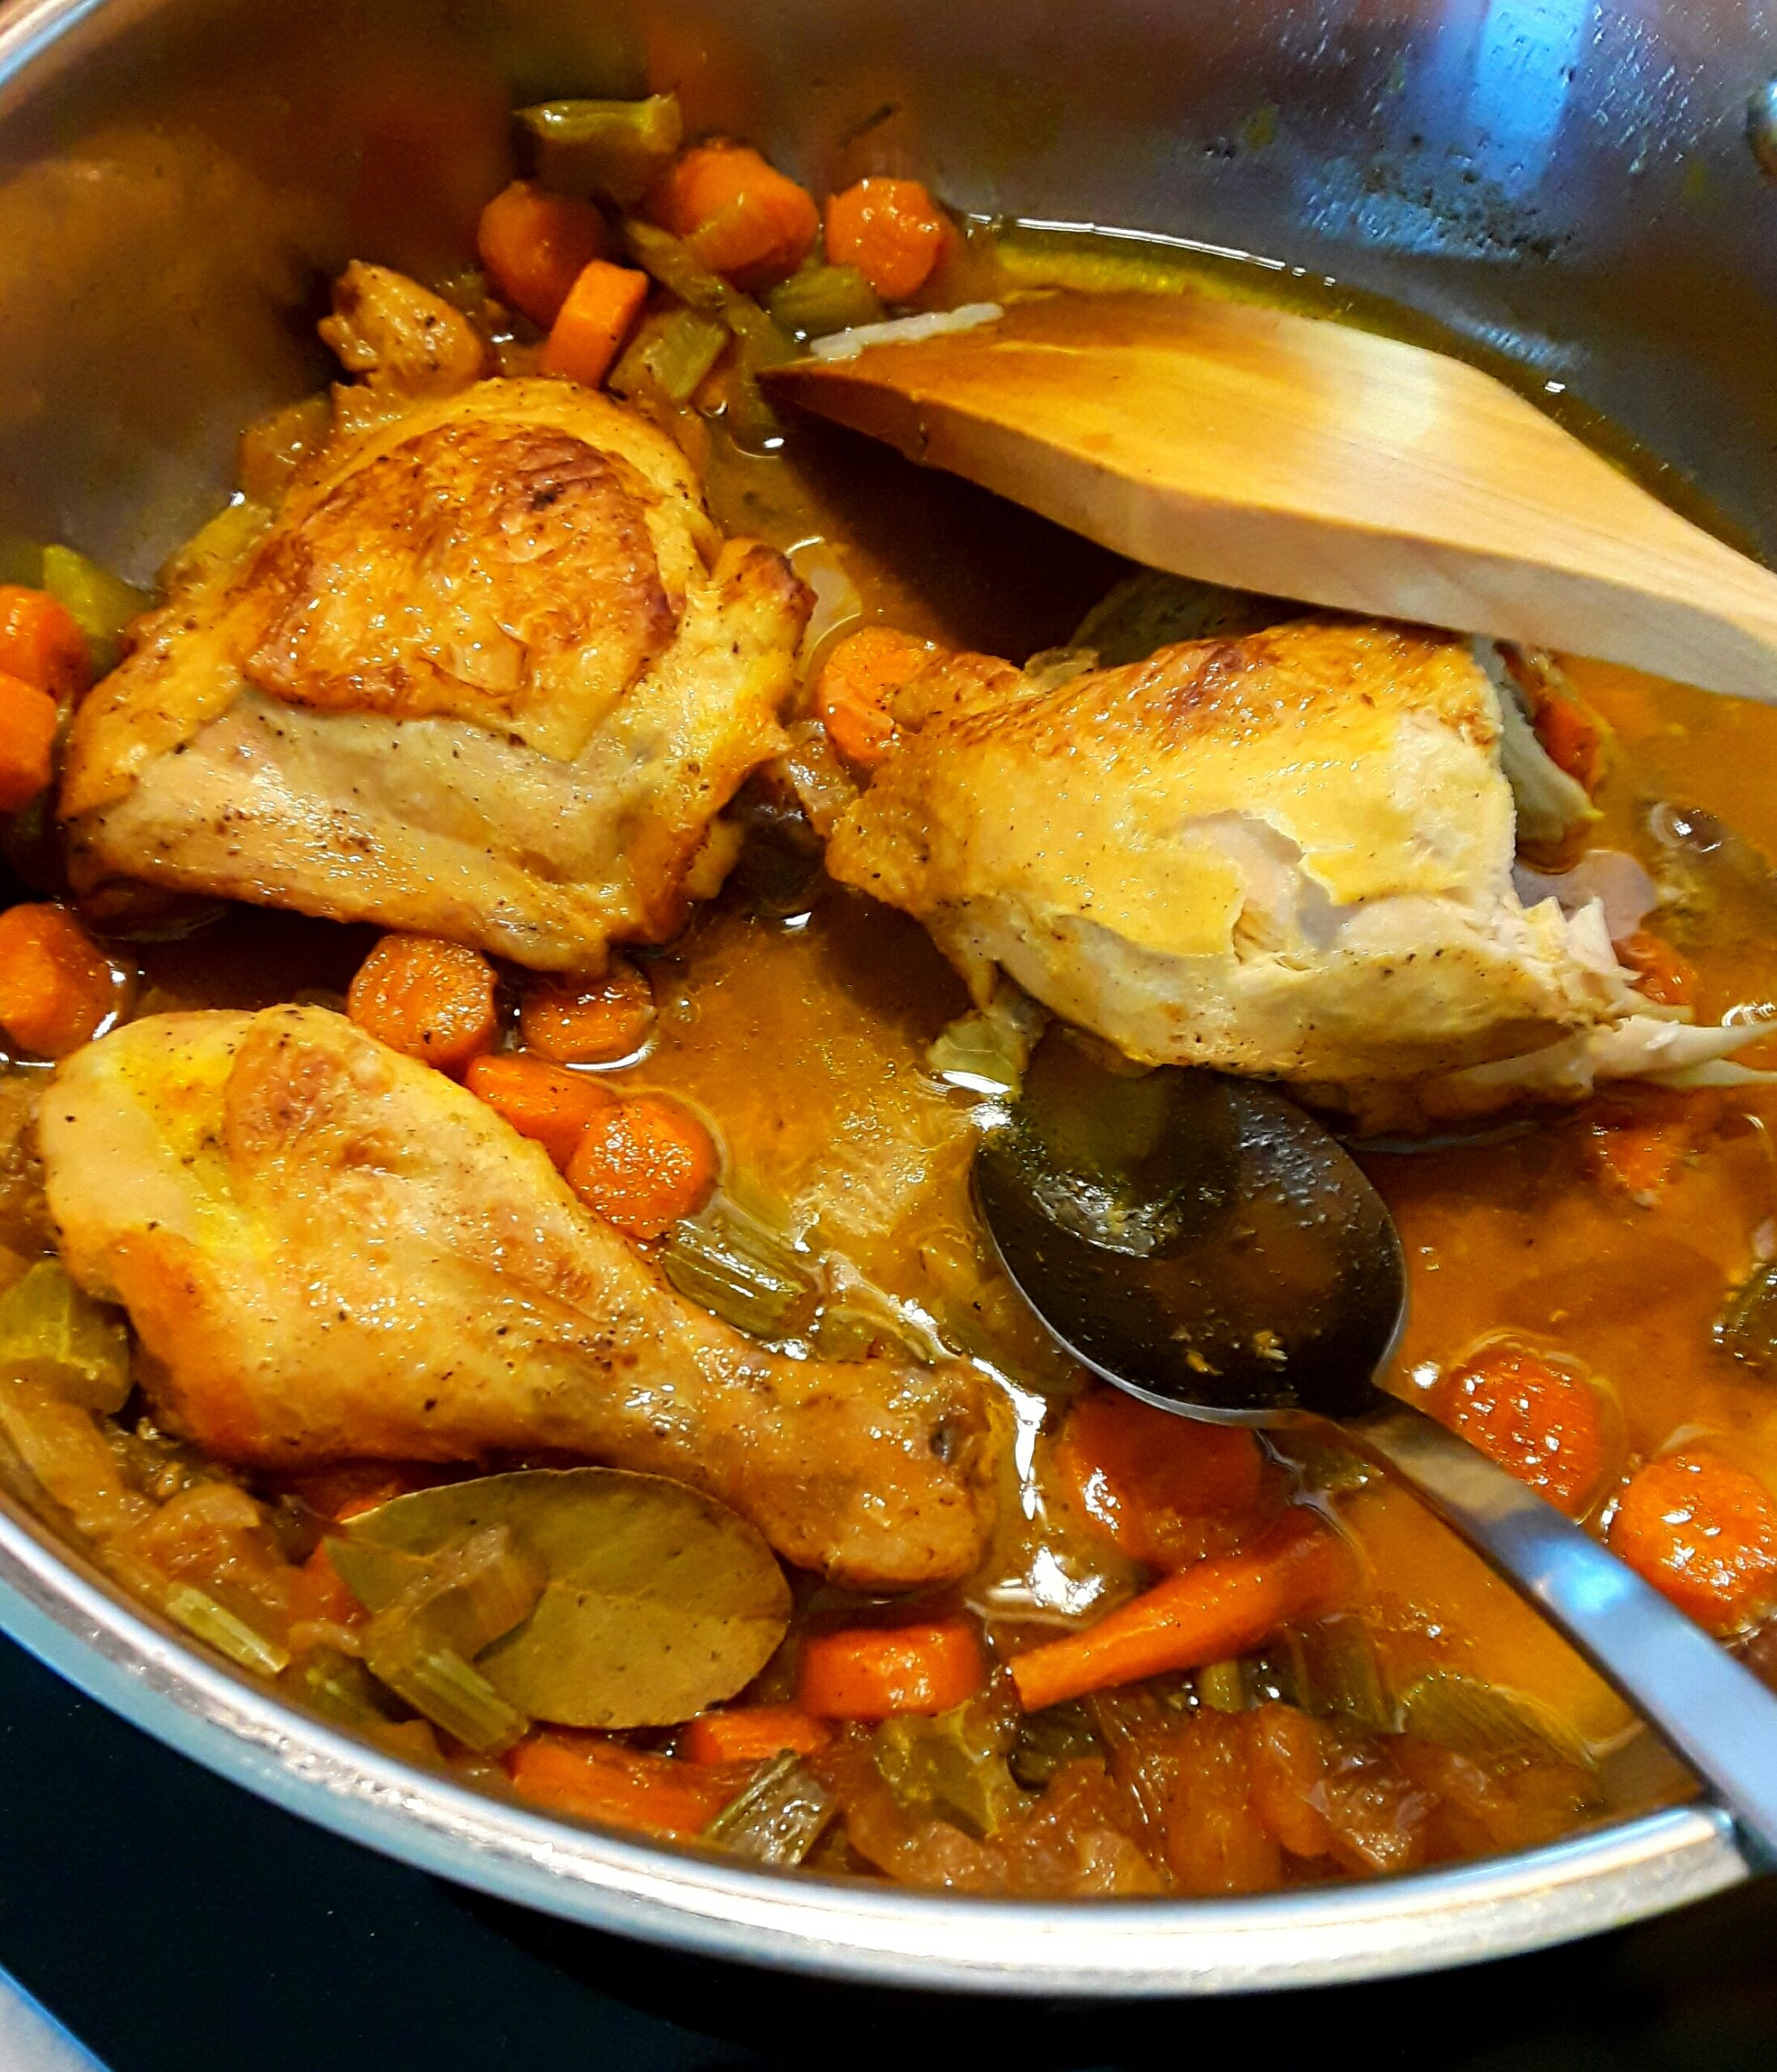 Caramelizing the chicken pieces with the chopped onions and carrots